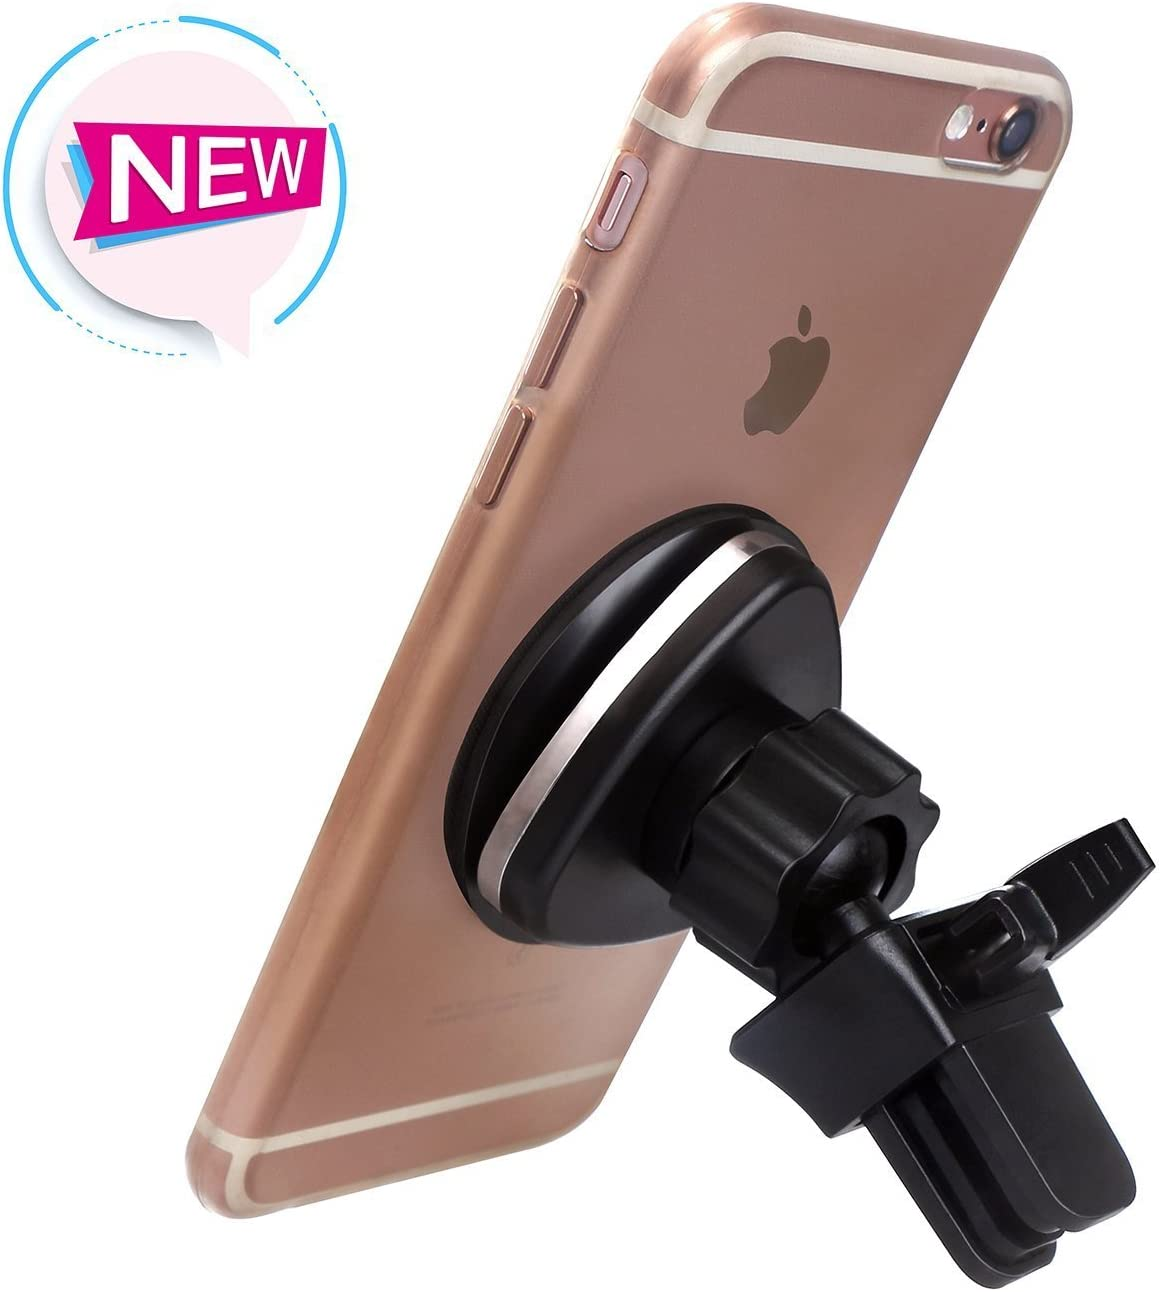 Samsung Galaxy S9// S8// S7// S6 Quntis Magnetic Phone Car Mount Holder for iPhone X// 8//7// 6s// 6 Plus,iPhone 5s// 5c// 5 Note 8 Pixel 2 XL and GPS Devices LG HTC Magnetic Car Mount